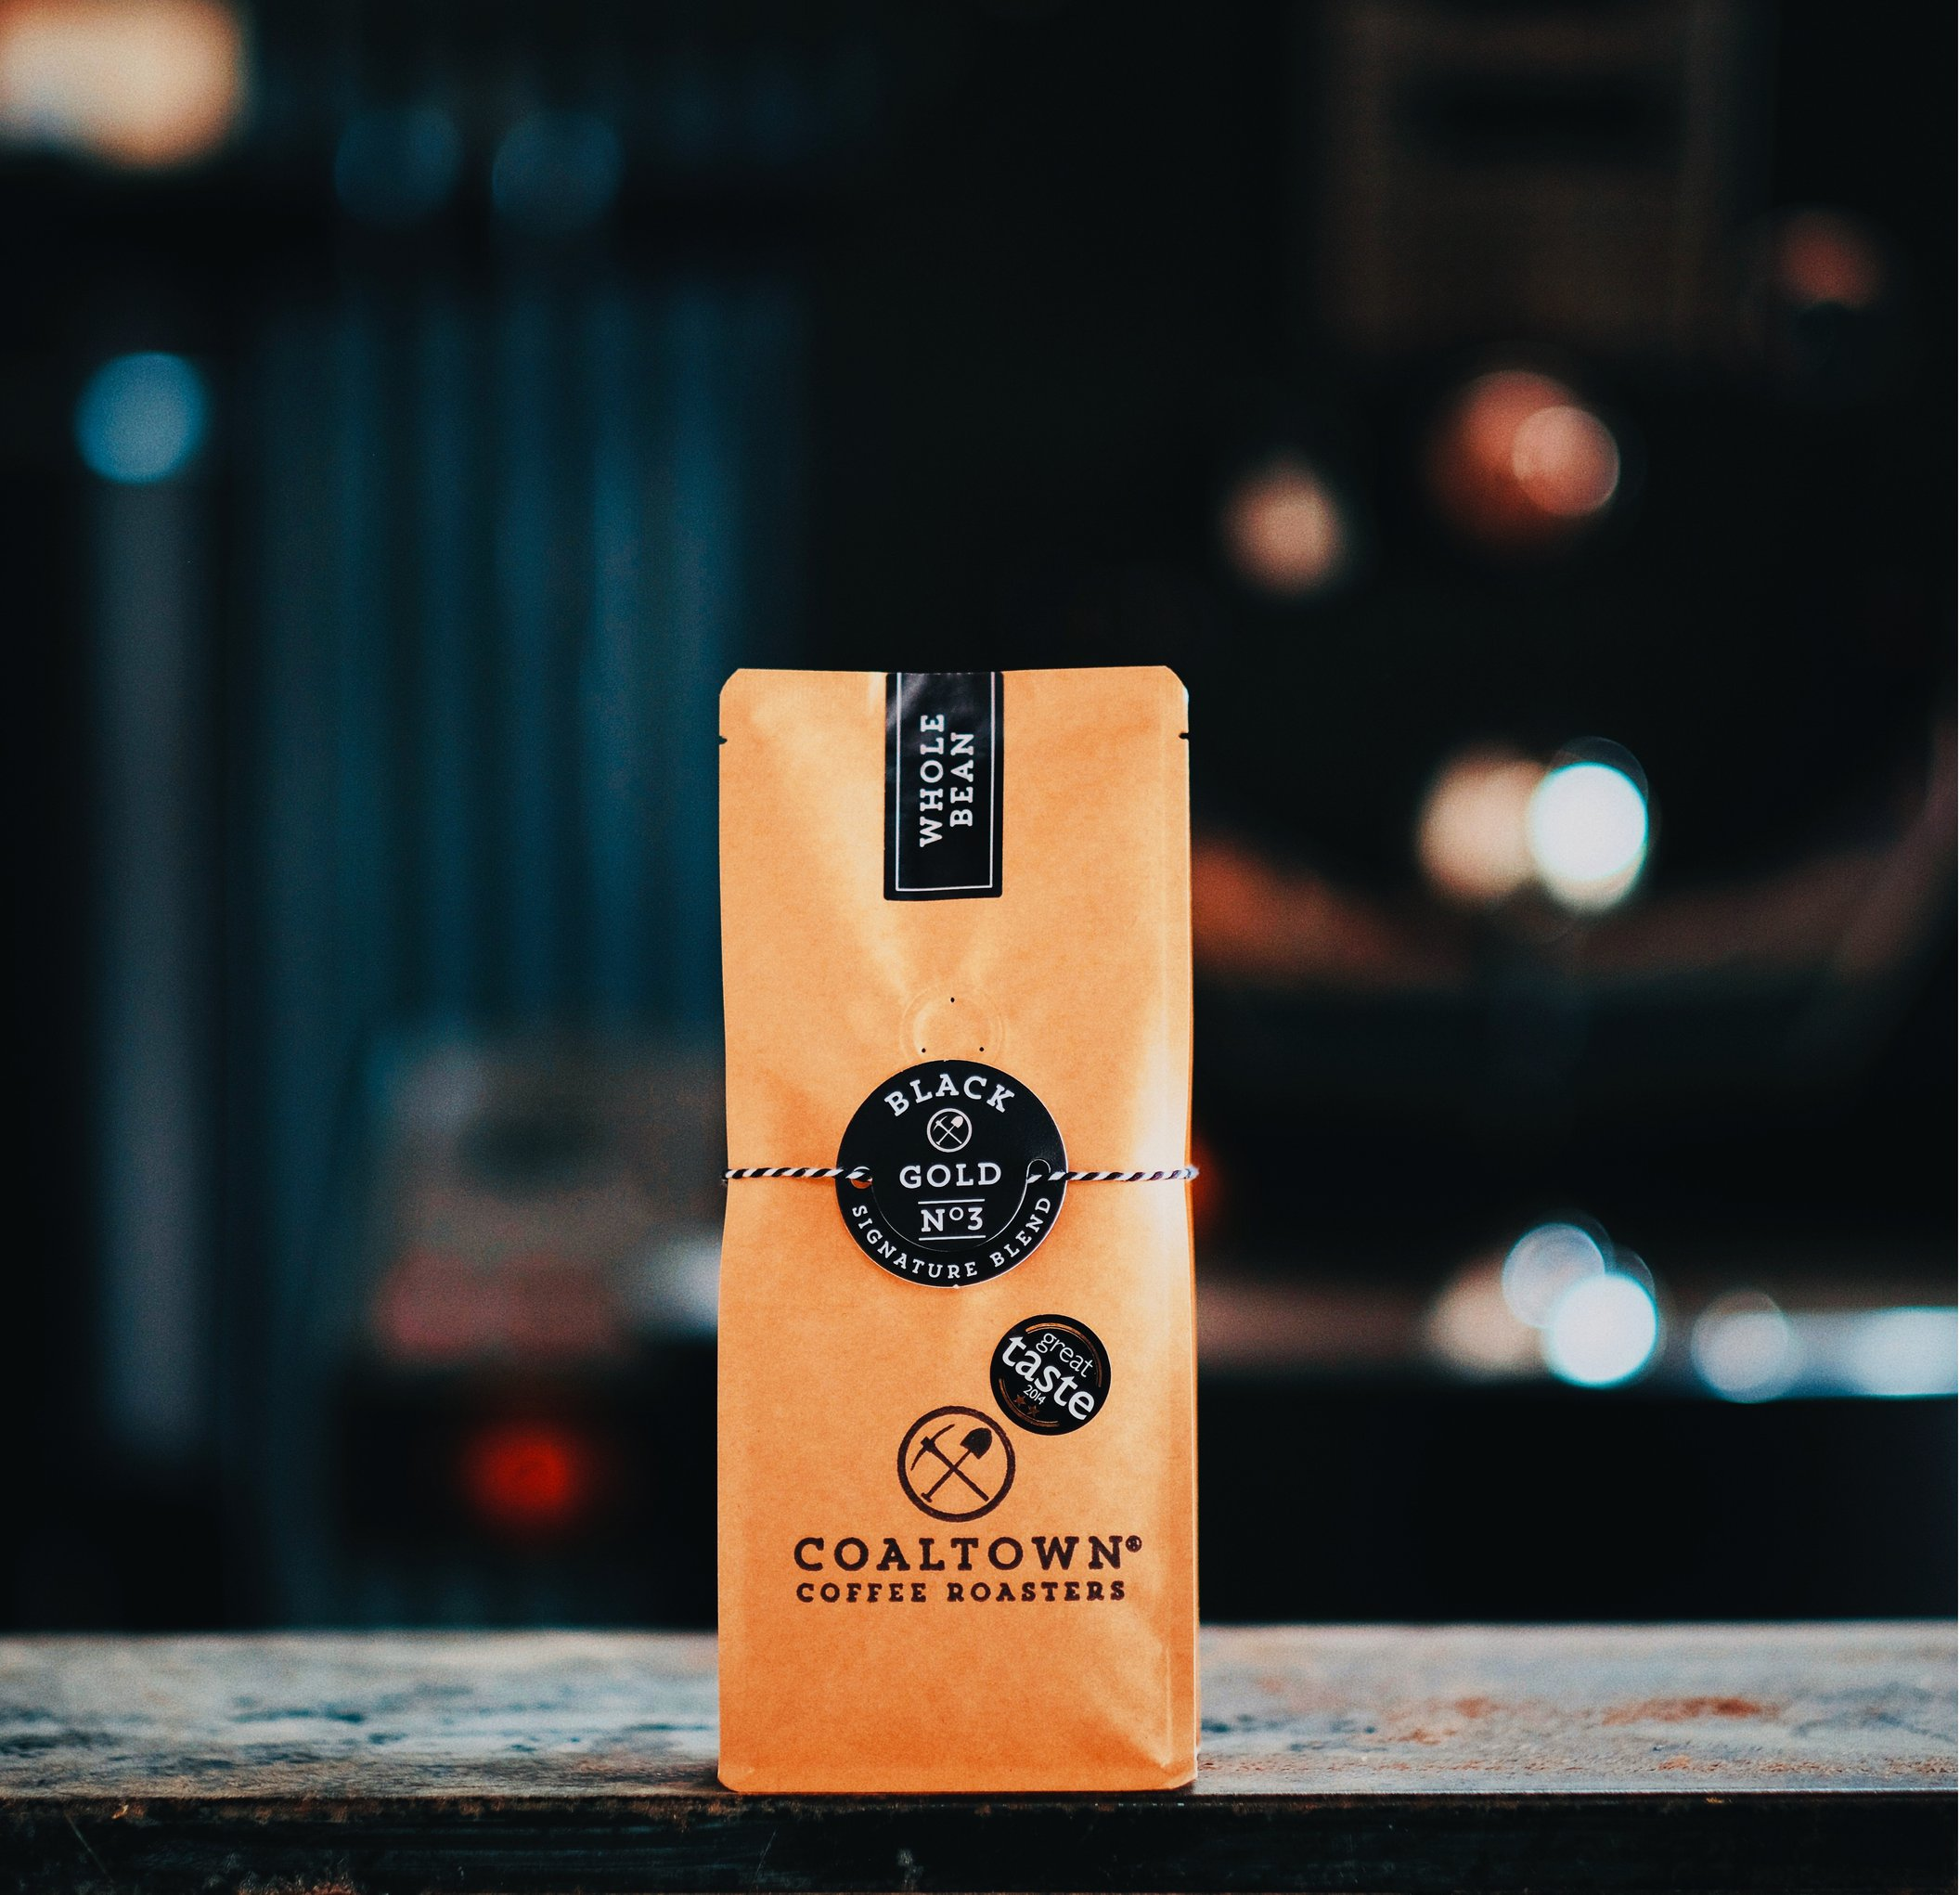 Photo: COALTOWN COFFEE ROASTERS